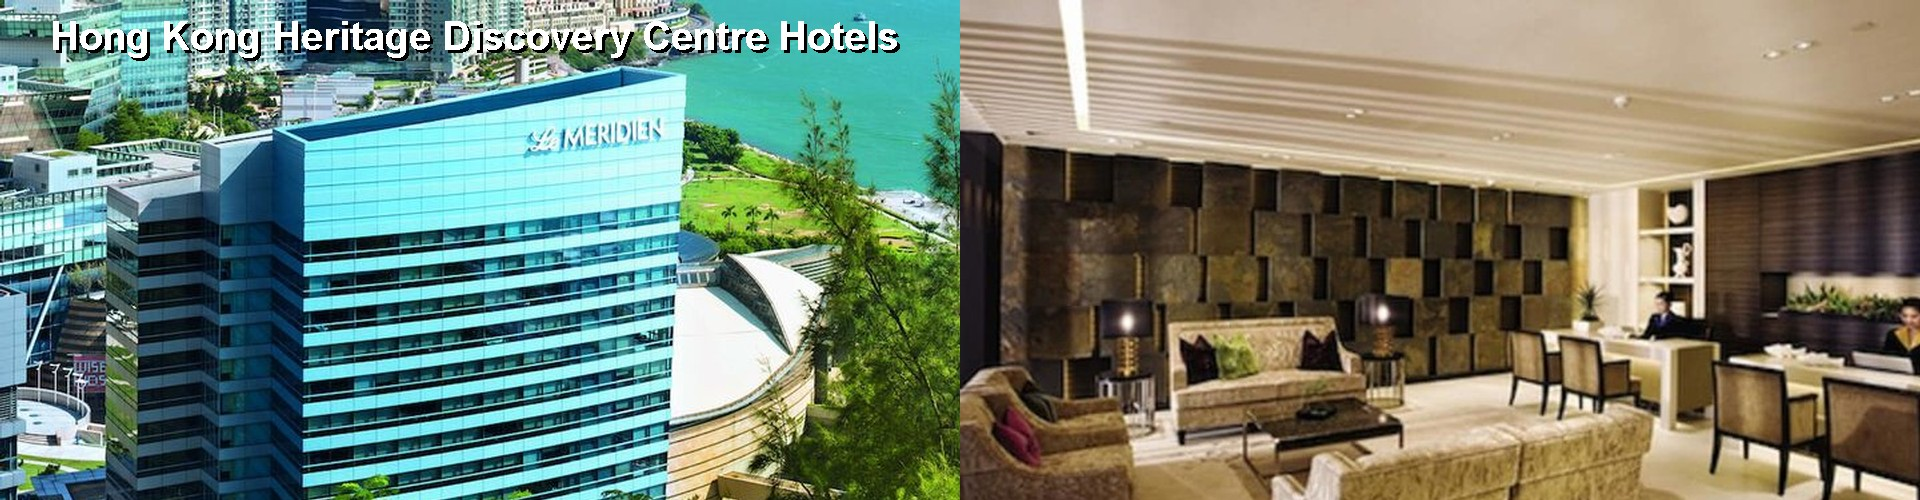 5 Best Hotels near Hong Kong Heritage Discovery Centre